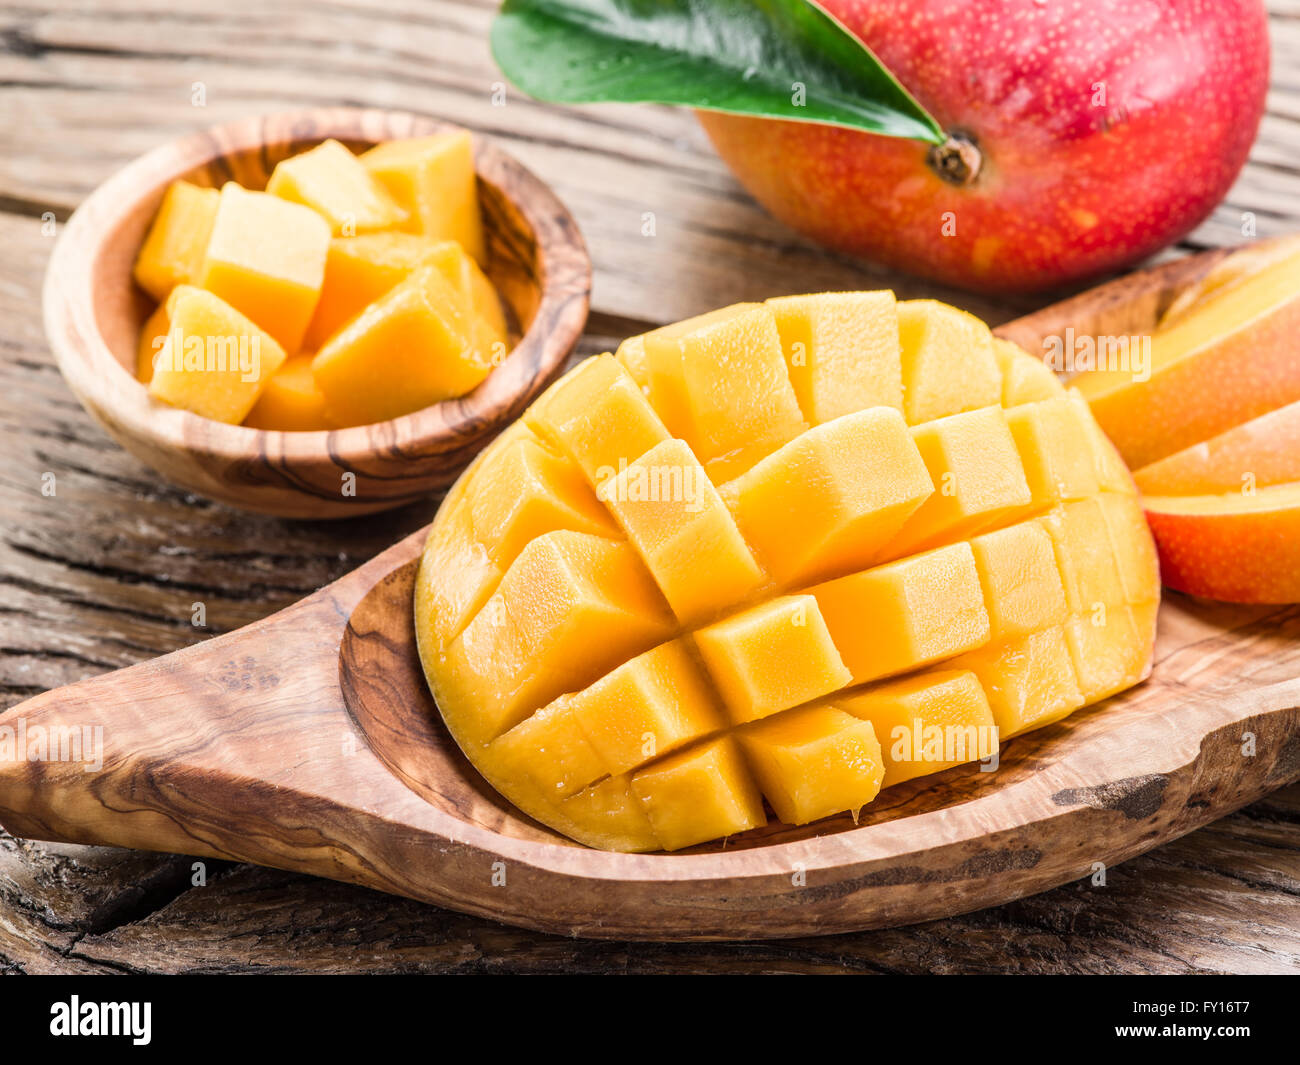 Mango fruit and mango cubes on the wooden table. - Stock Image